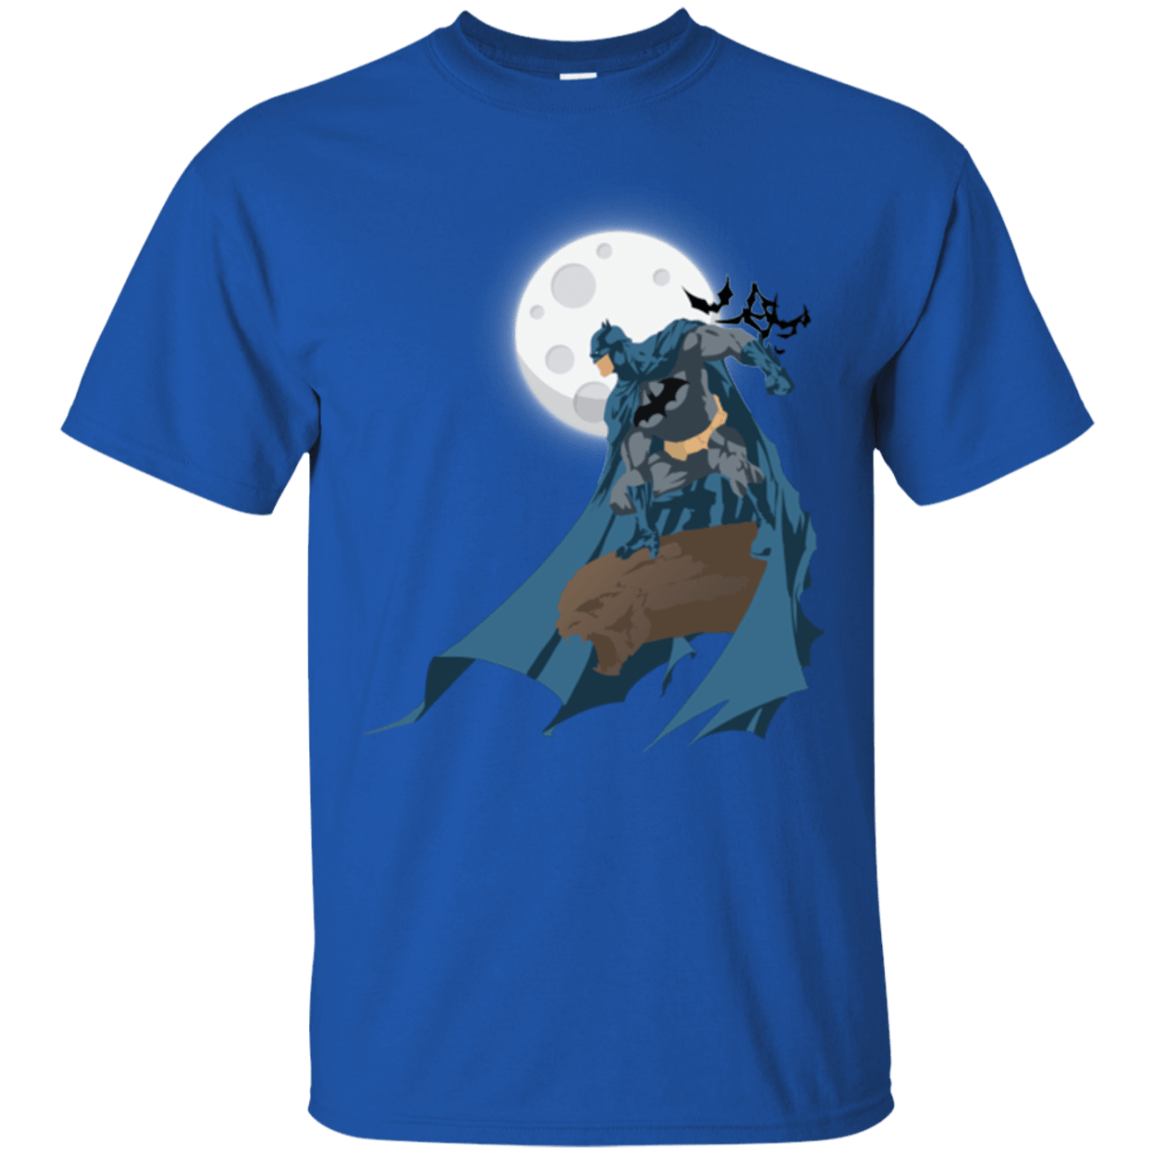 T-Shirts Royal / Small Batman T-Shirt